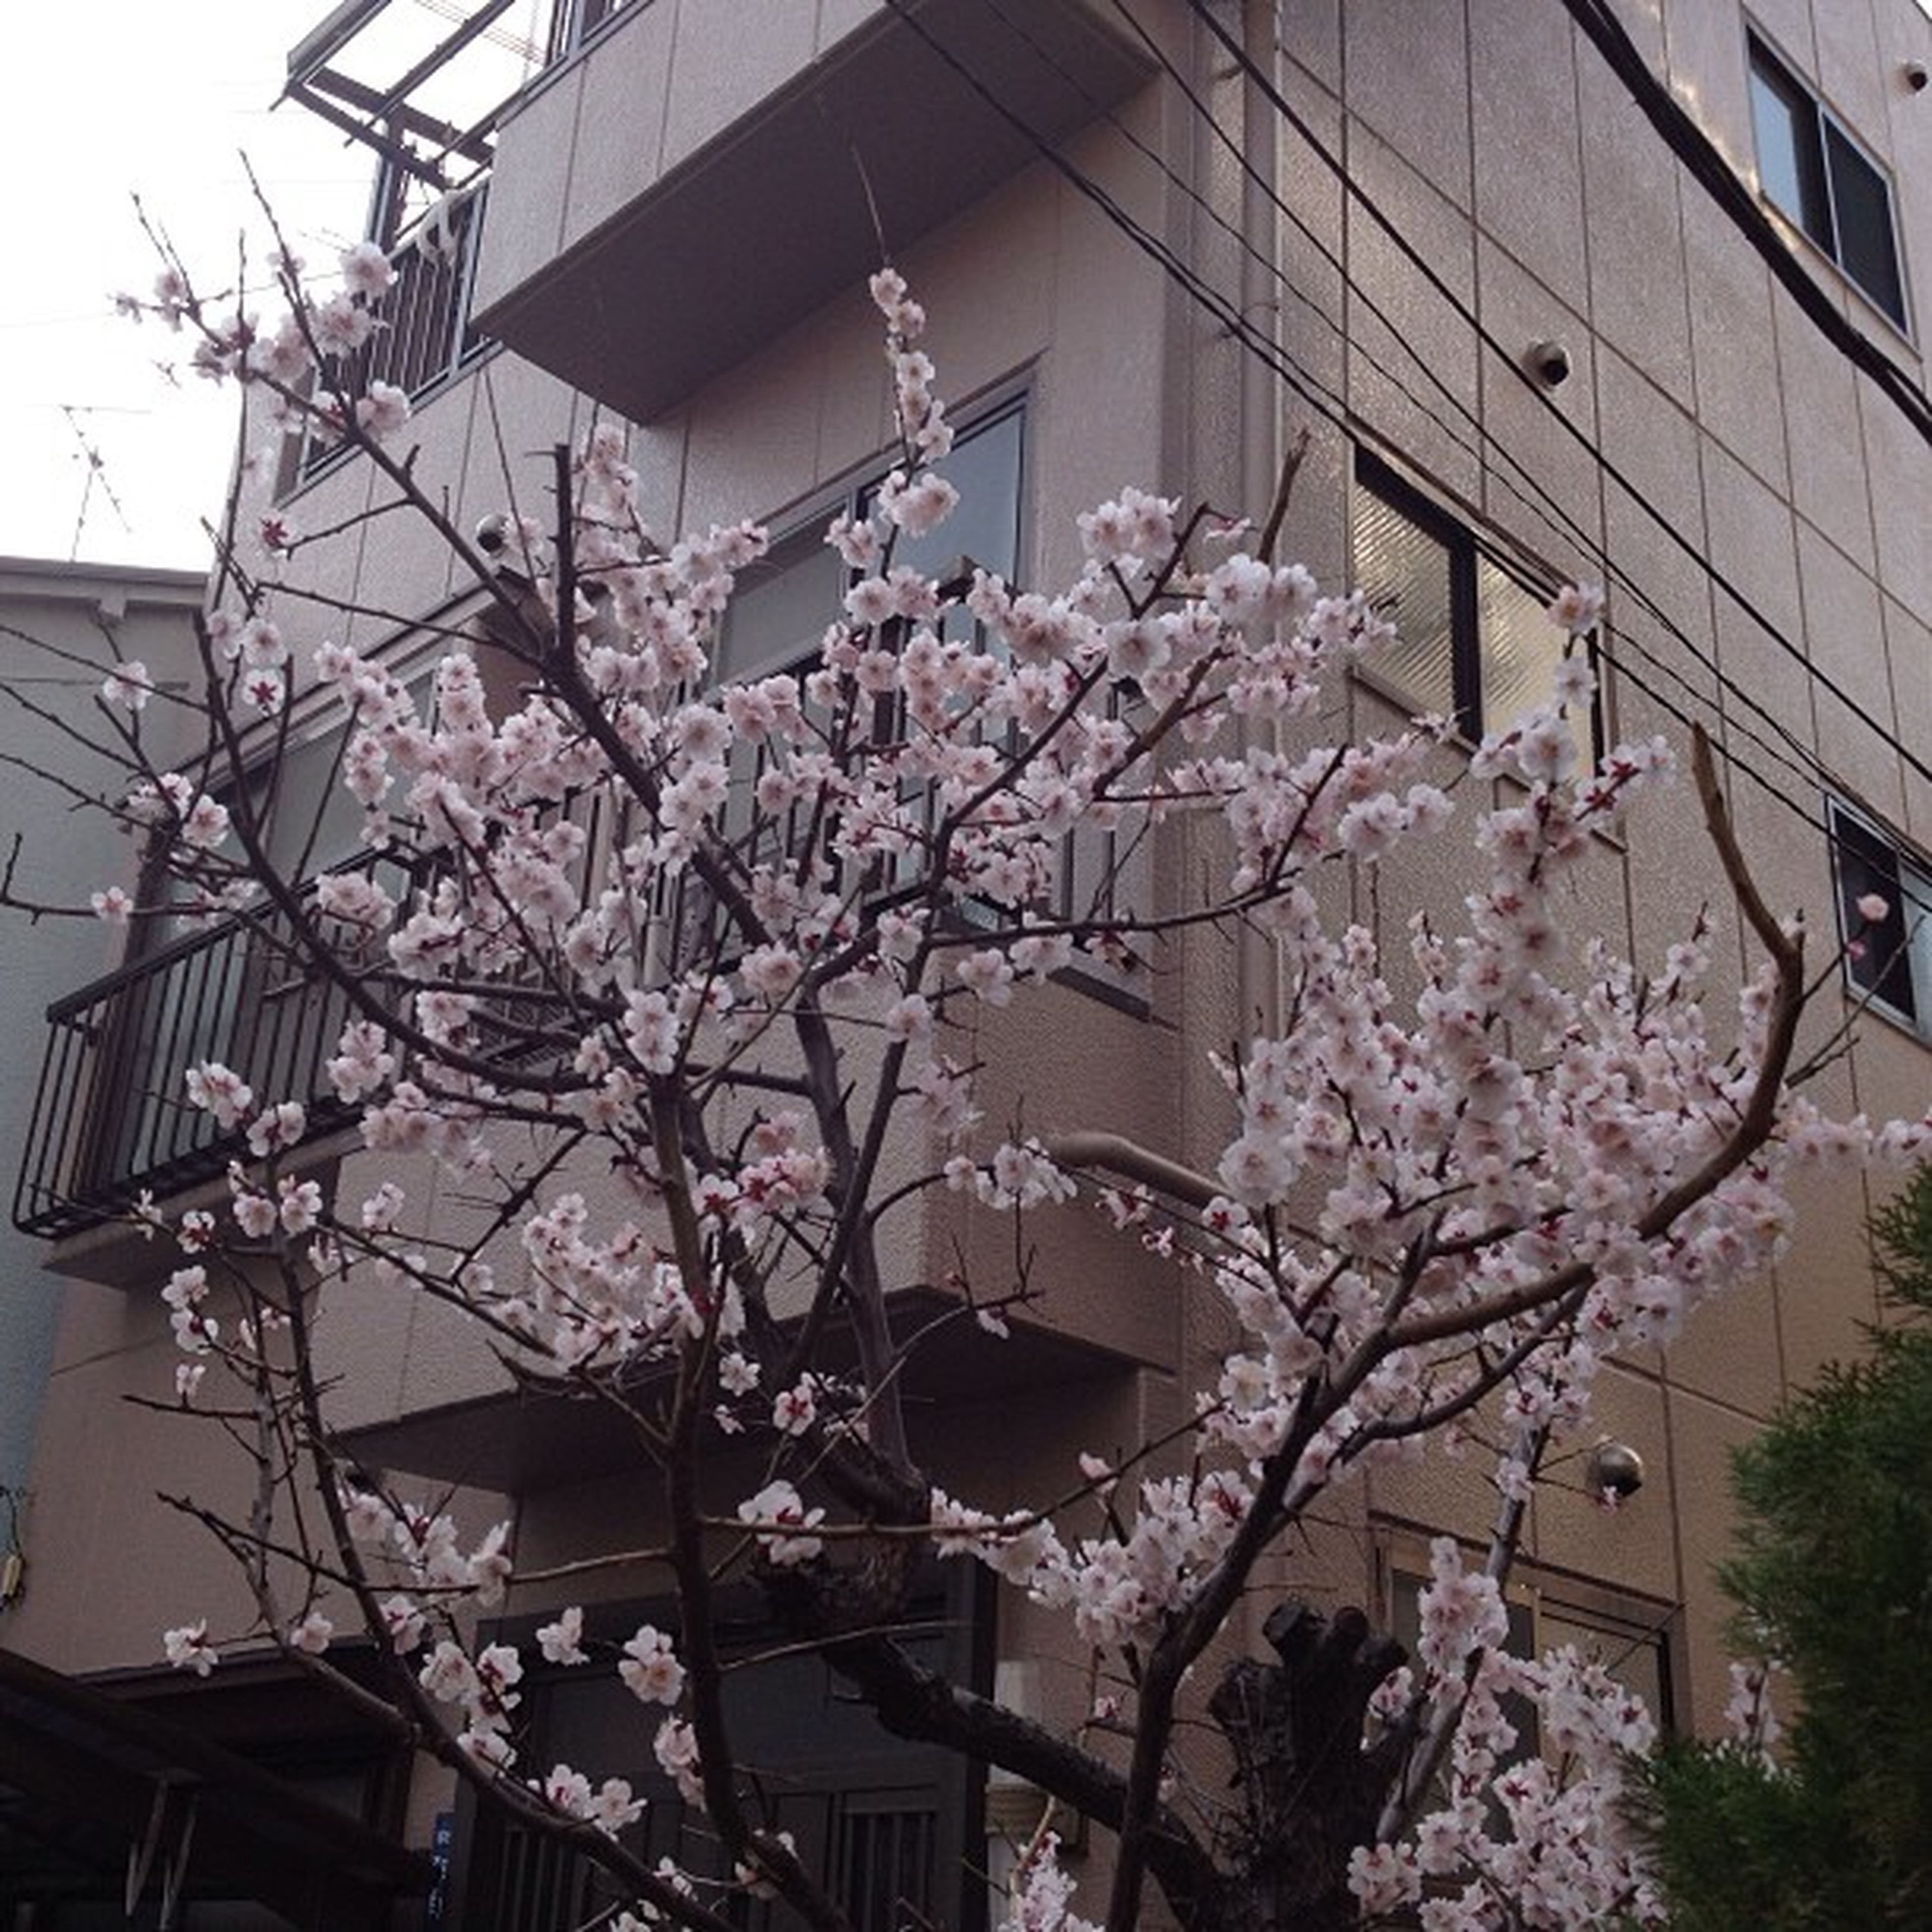 flower, building exterior, architecture, built structure, low angle view, branch, tree, growth, freshness, blossom, fragility, house, nature, pink color, in bloom, cherry blossom, residential structure, residential building, blooming, building